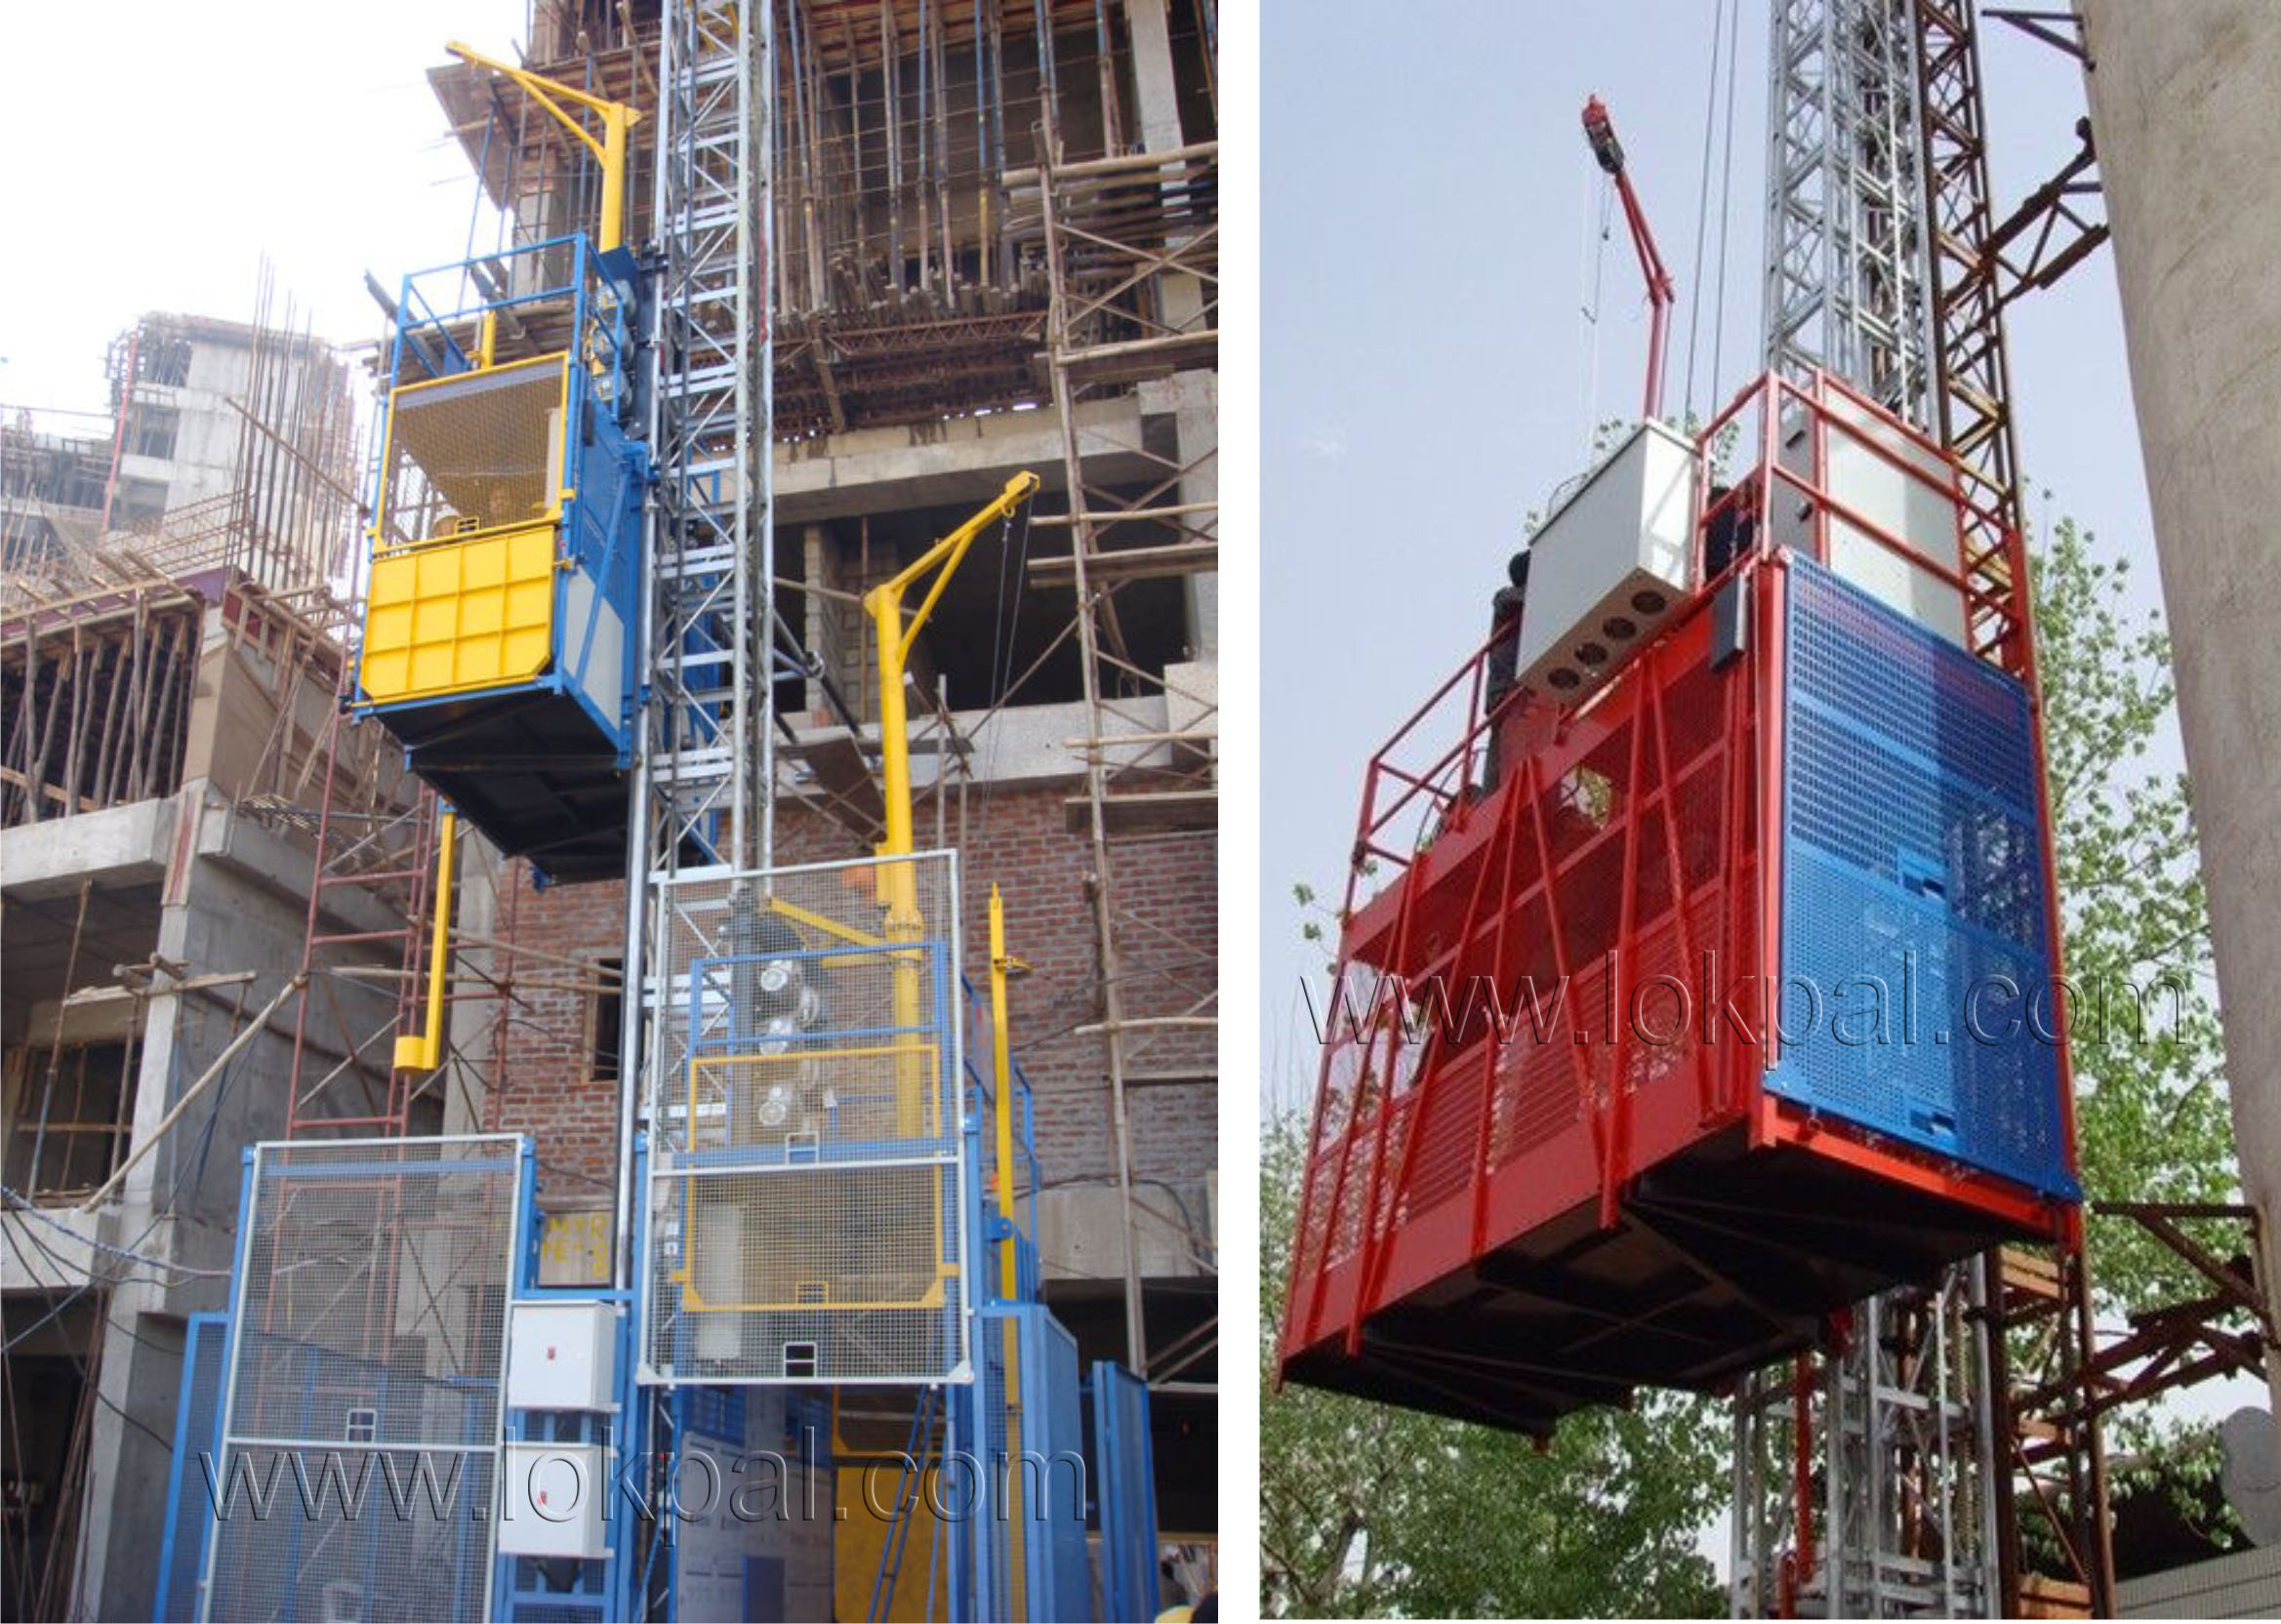 Construction Hoist, Construction Hoist Suppliers, Construction Hoist Manufacturer, Dealers, Wholesalers, Noida, Delhi NCR, India